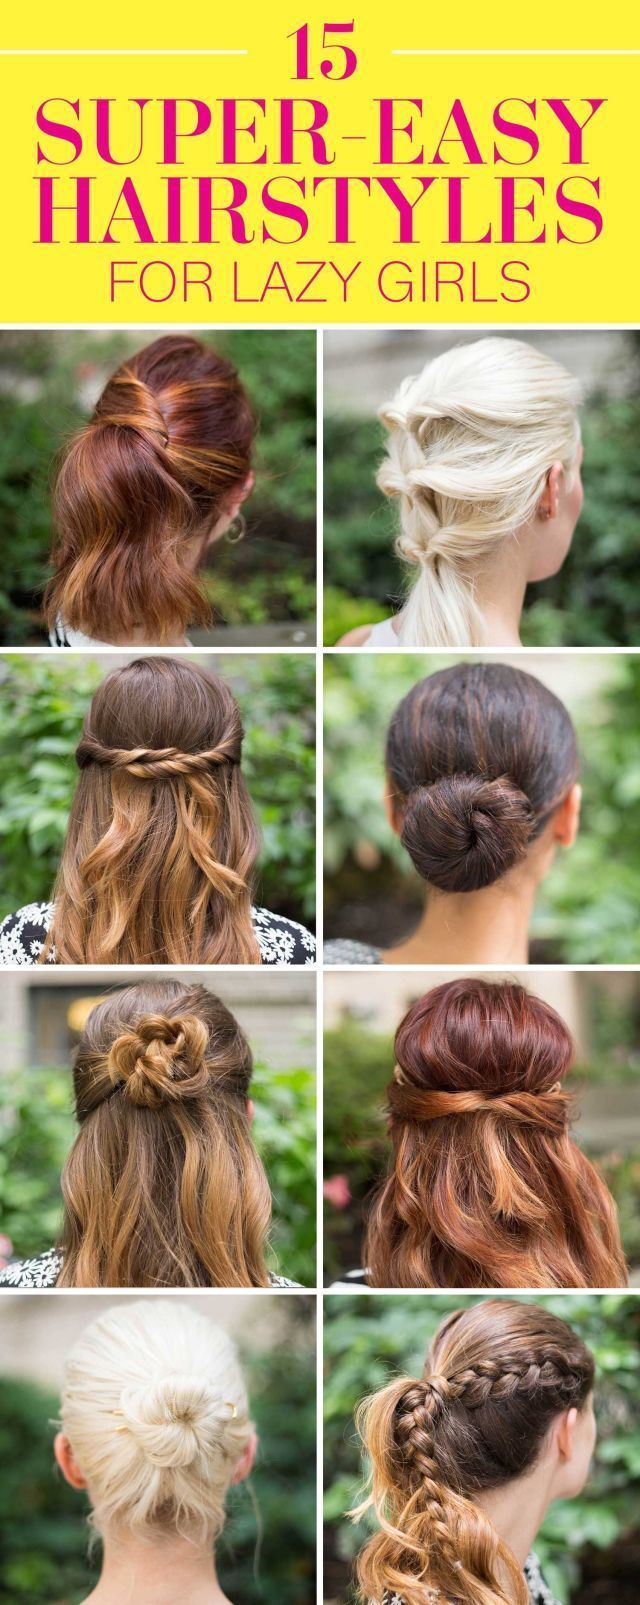 15 Super-Easy Hairstyles for Lazy Girls Who Can't Even - http://1pic4u.com/2015/09/08/15-super-easy-hairstyles-for-lazy-girls-who-cant-even/